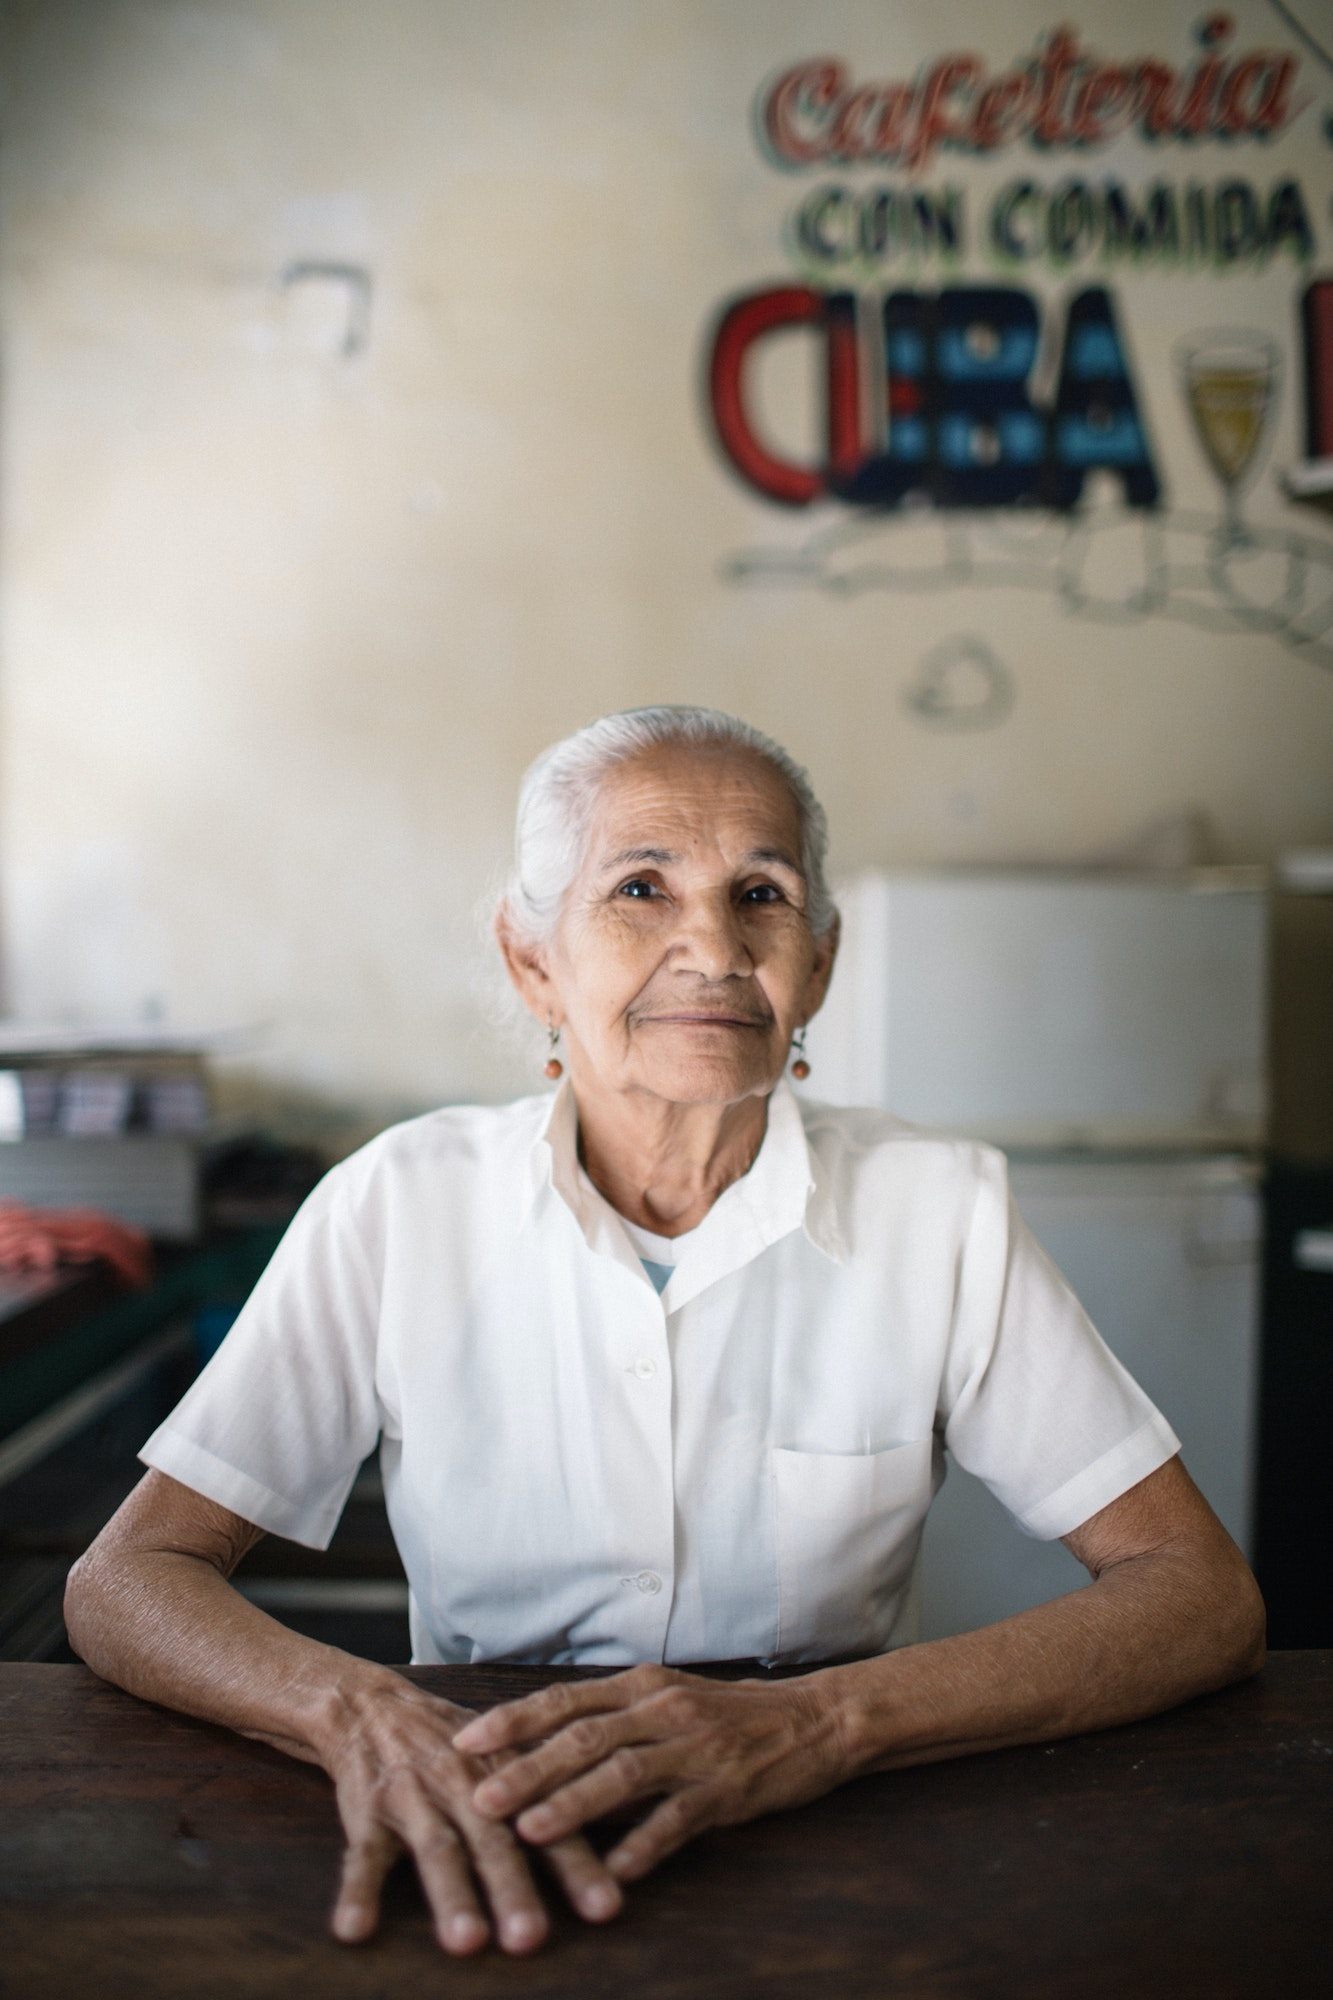 A woman gives a slight smile for Laucht's camera in a local restaurant in Cuba.